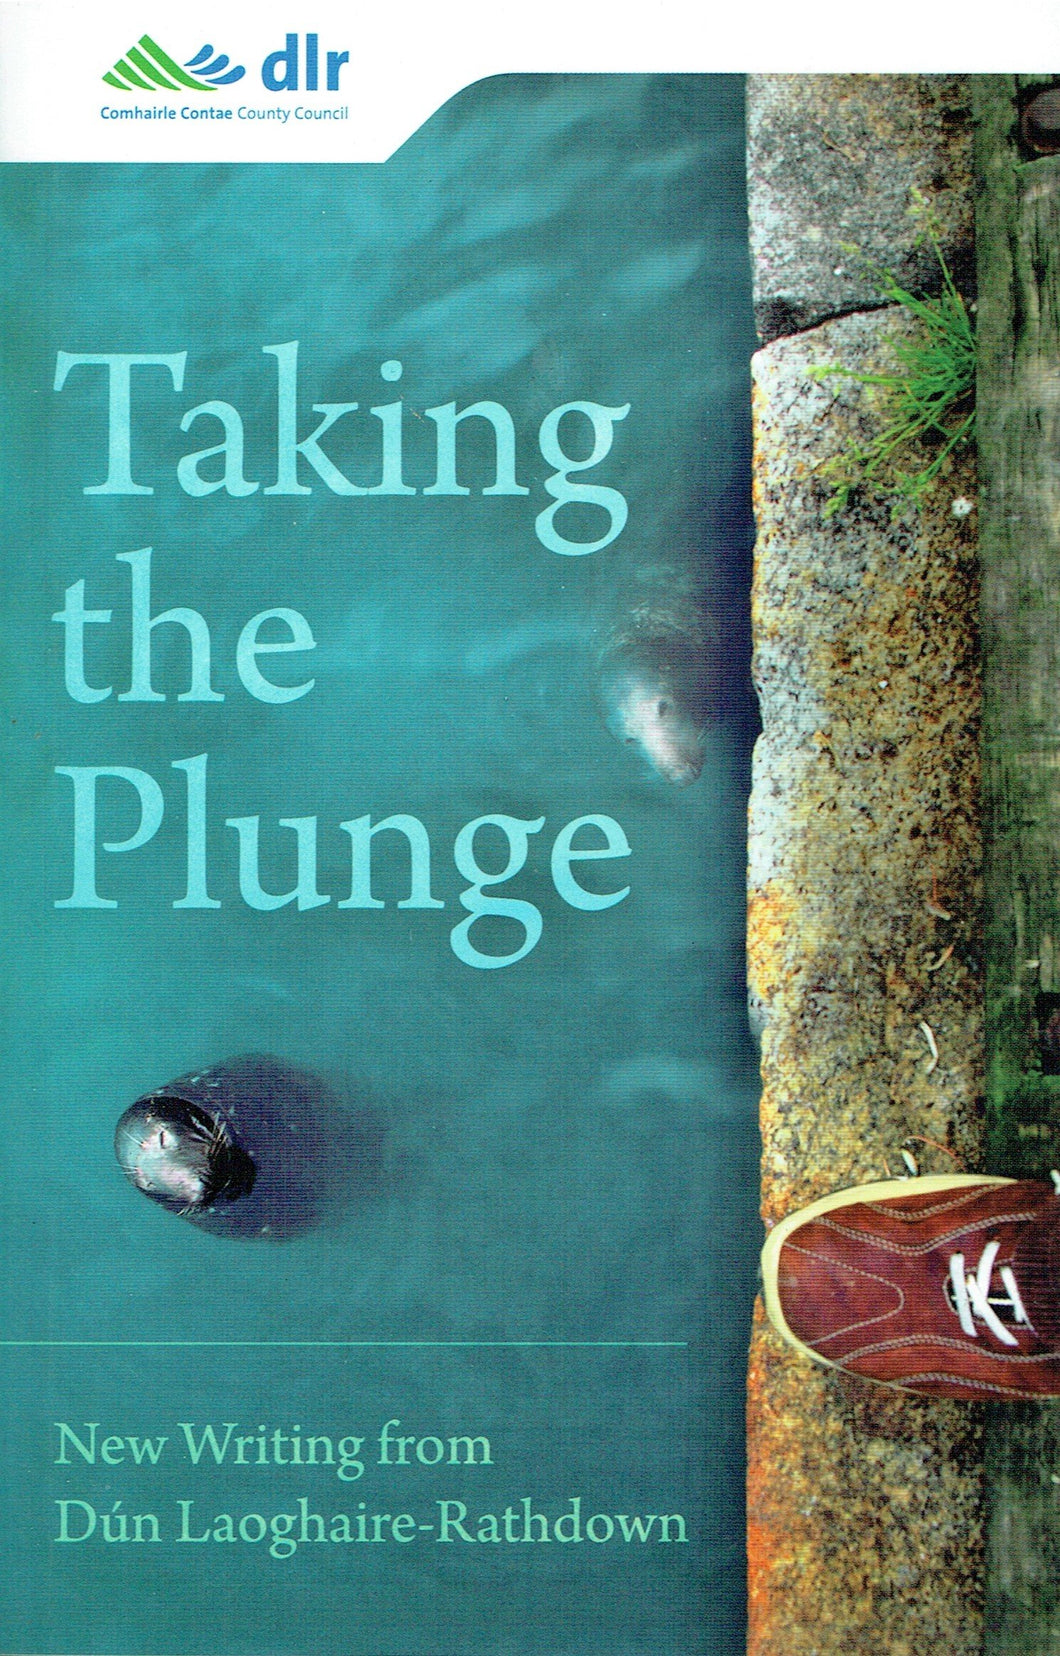 Taking the Plunge: New Writing from Dún Laoghaire-Rathdown